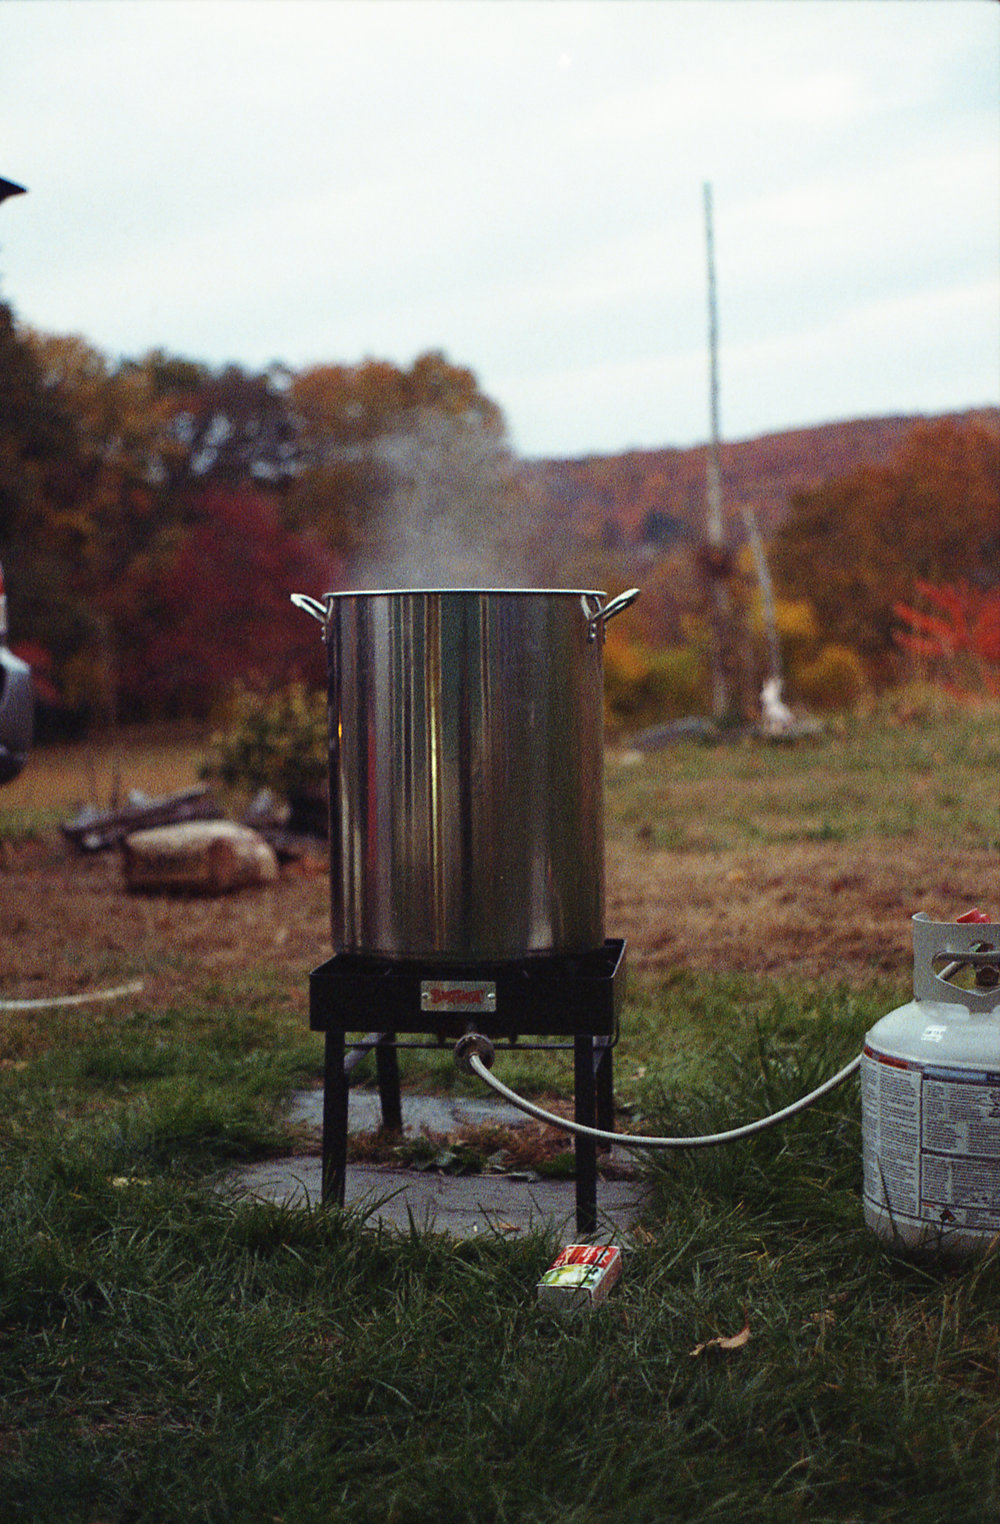 The mash tub set up for Bogdan's home brewery, which he operates while attending UConn. (Courtesy/Steve Bogdan)